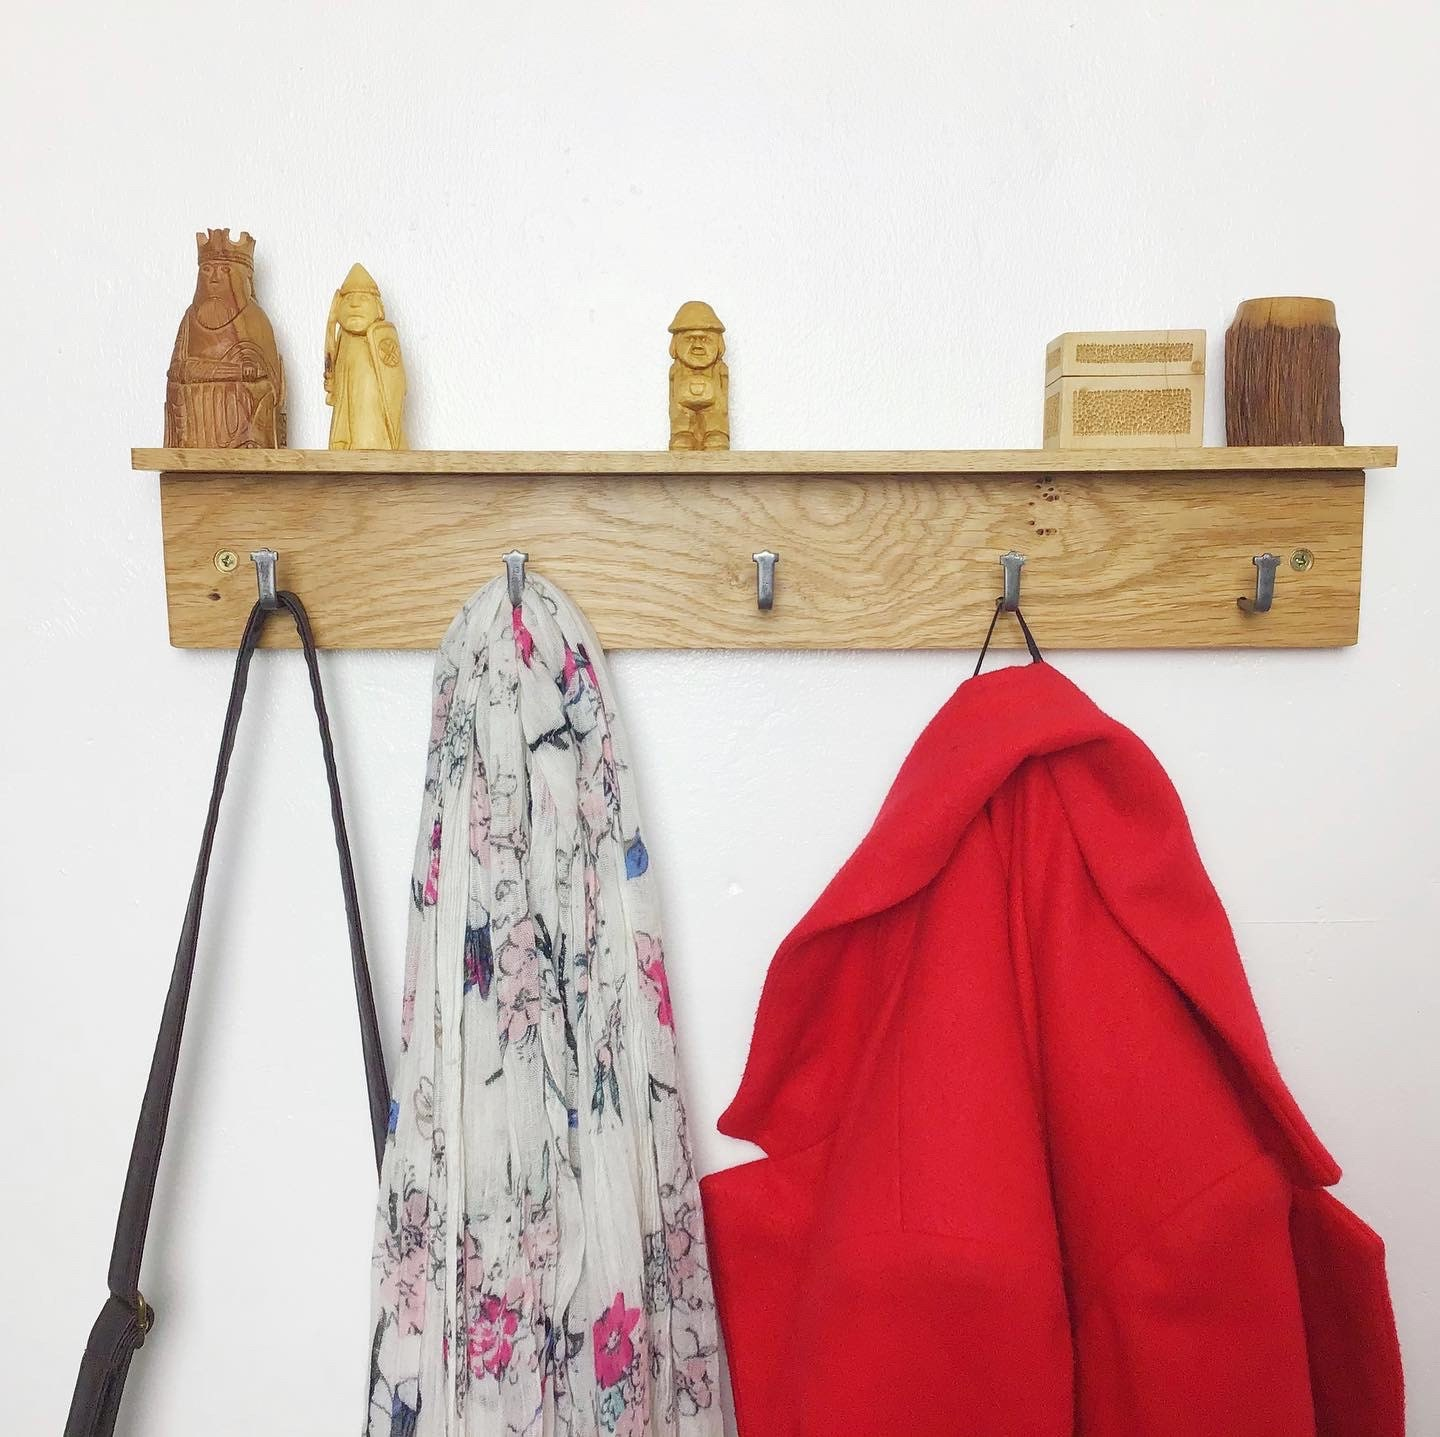 50cm long Coat rack with 5 hooks and shelf - by gorlech UK